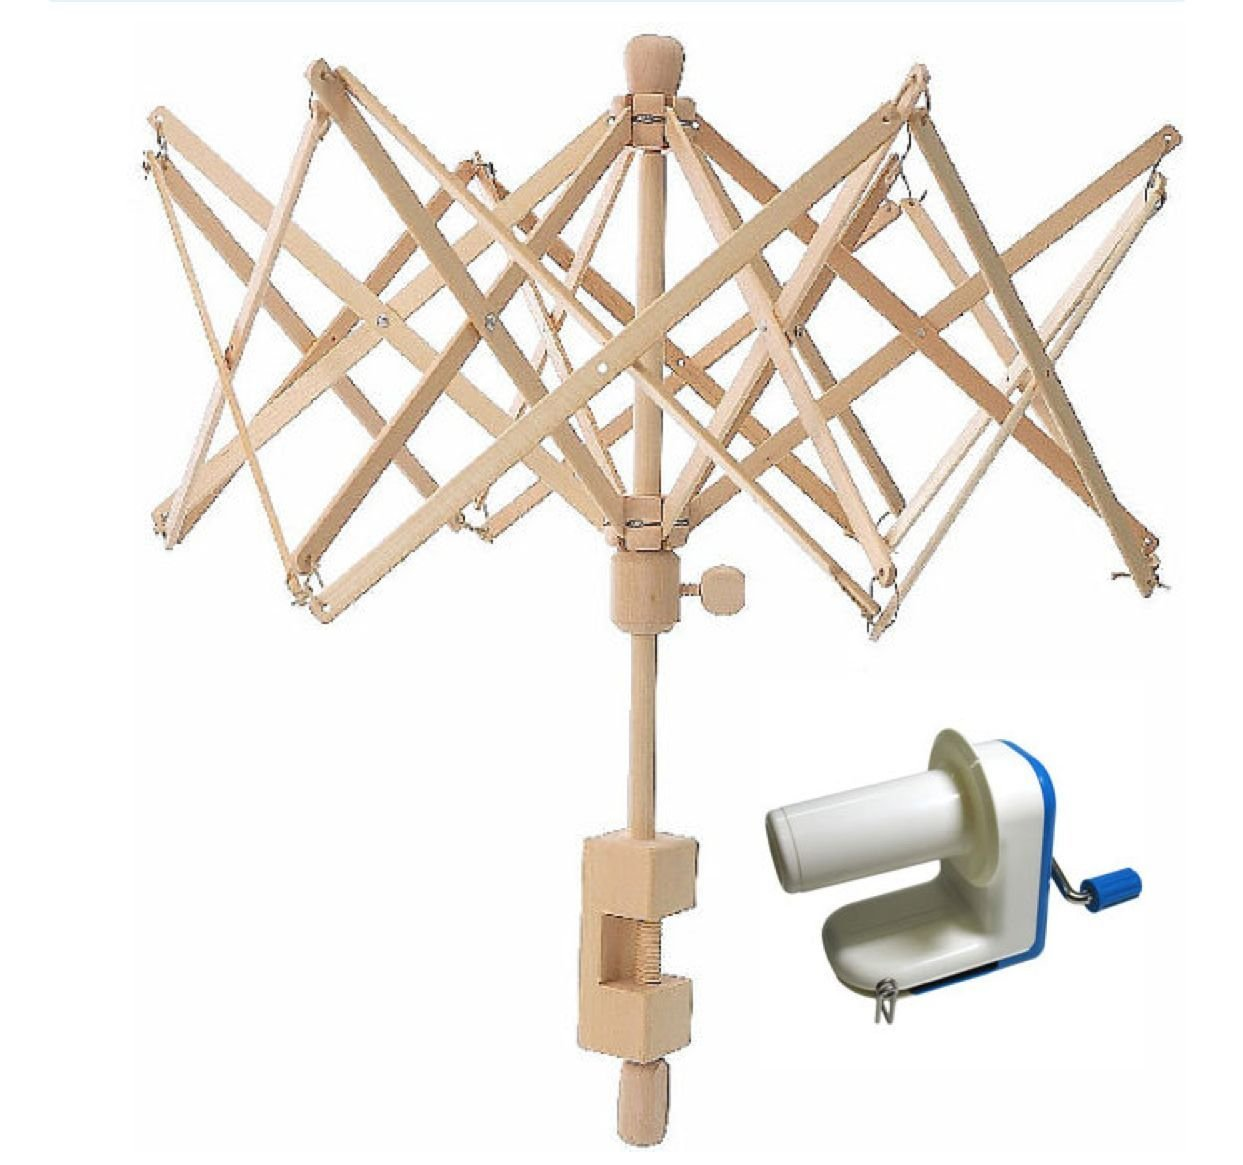 Inline Yarn Ball Winder and Wooden Umbrella Yarn Swift Combo! Sweet Crafty Tools